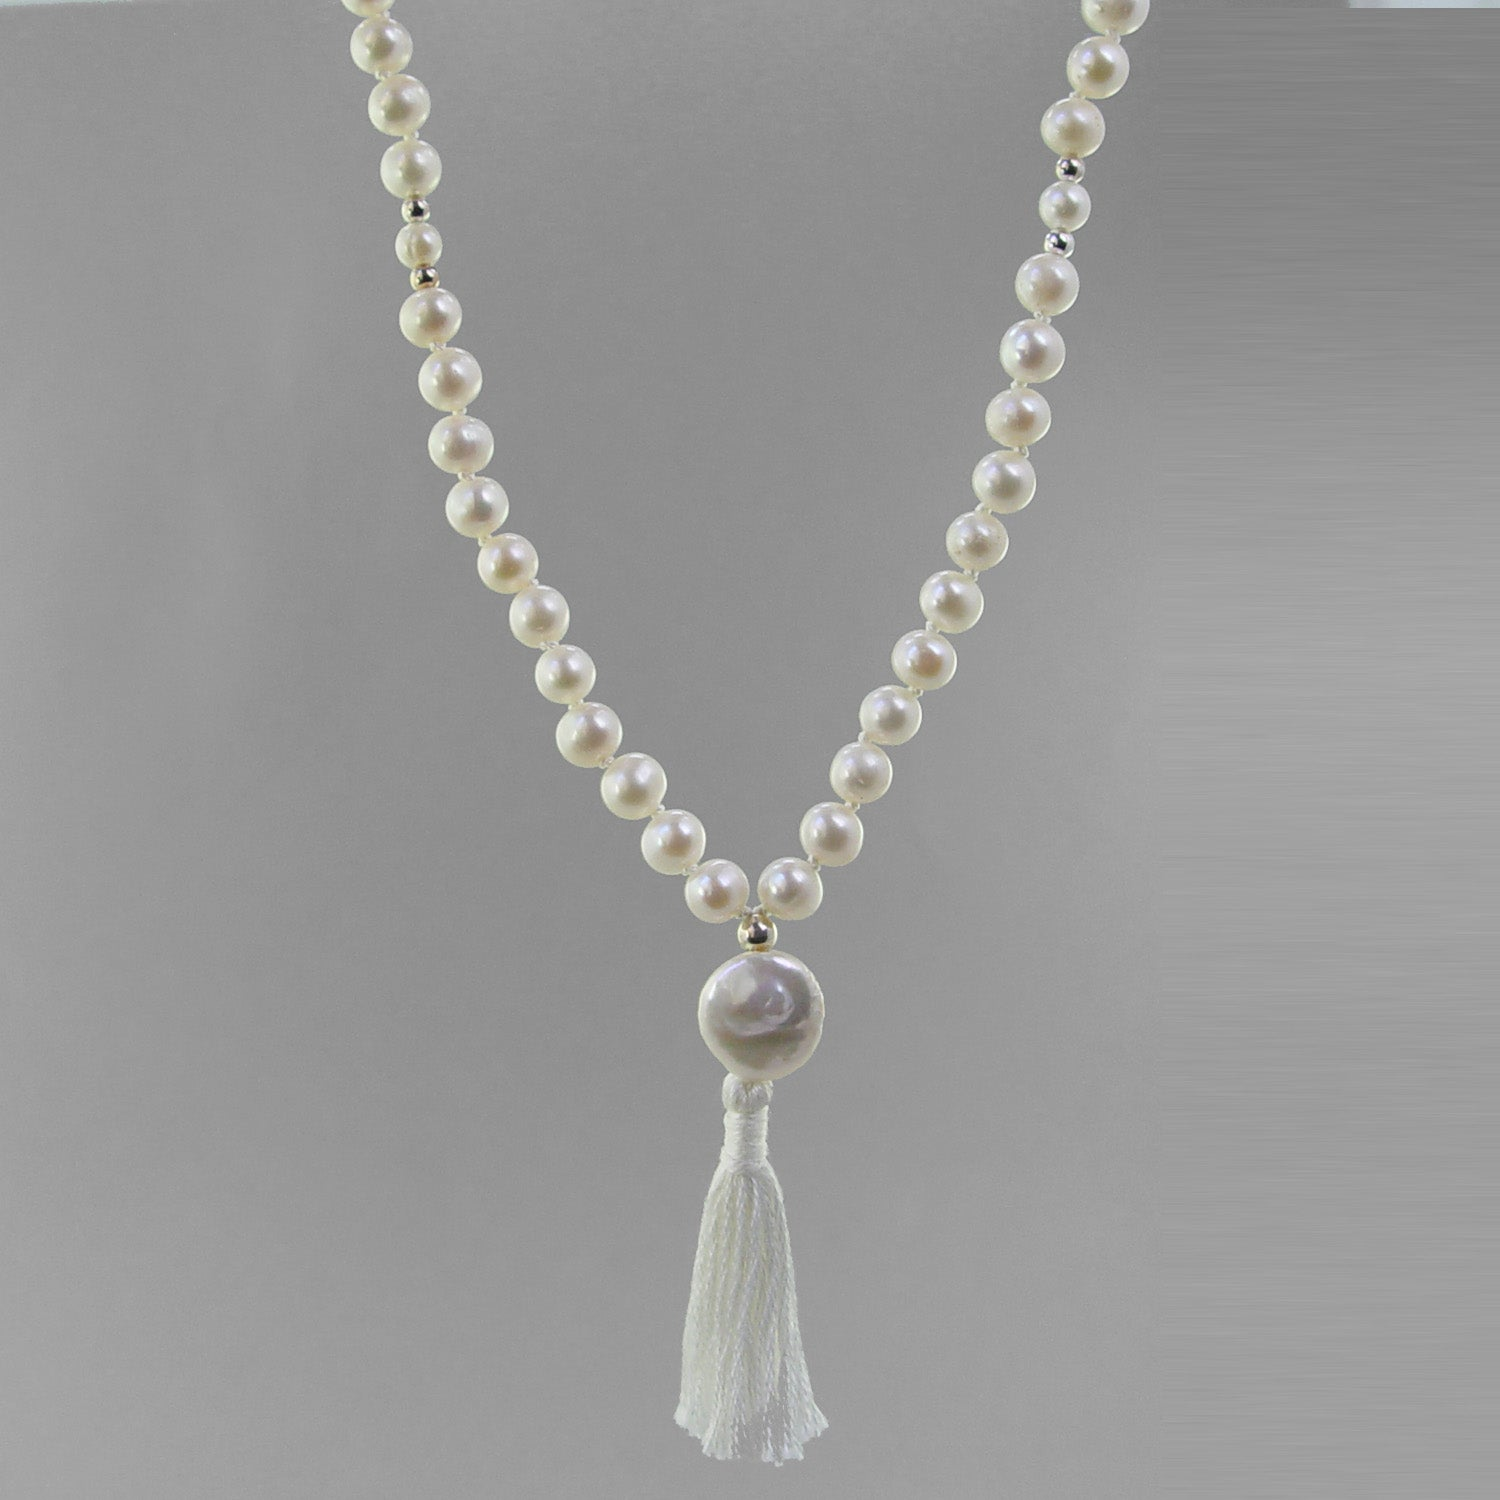 Moon Mala - White Pearl With Pearl Counter Beads